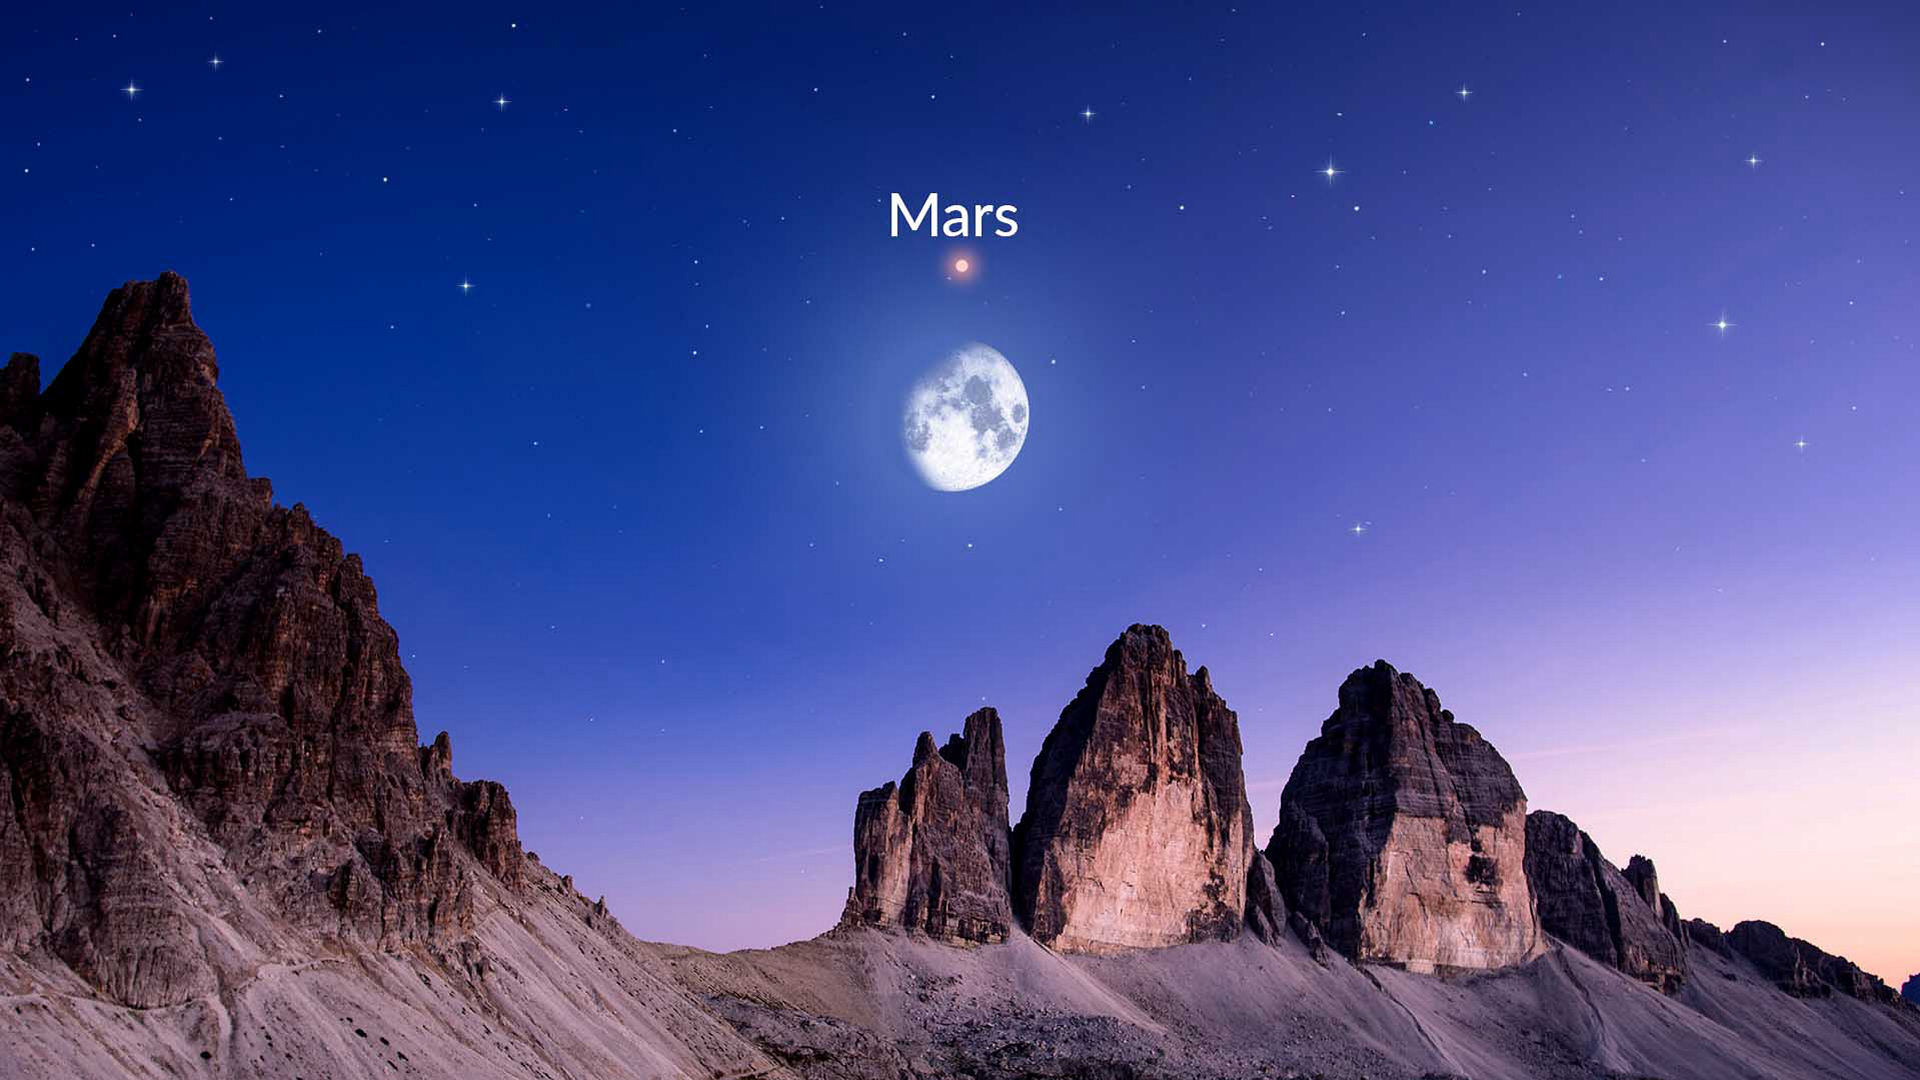 Moon and Mars Dance Together in the Night Sky